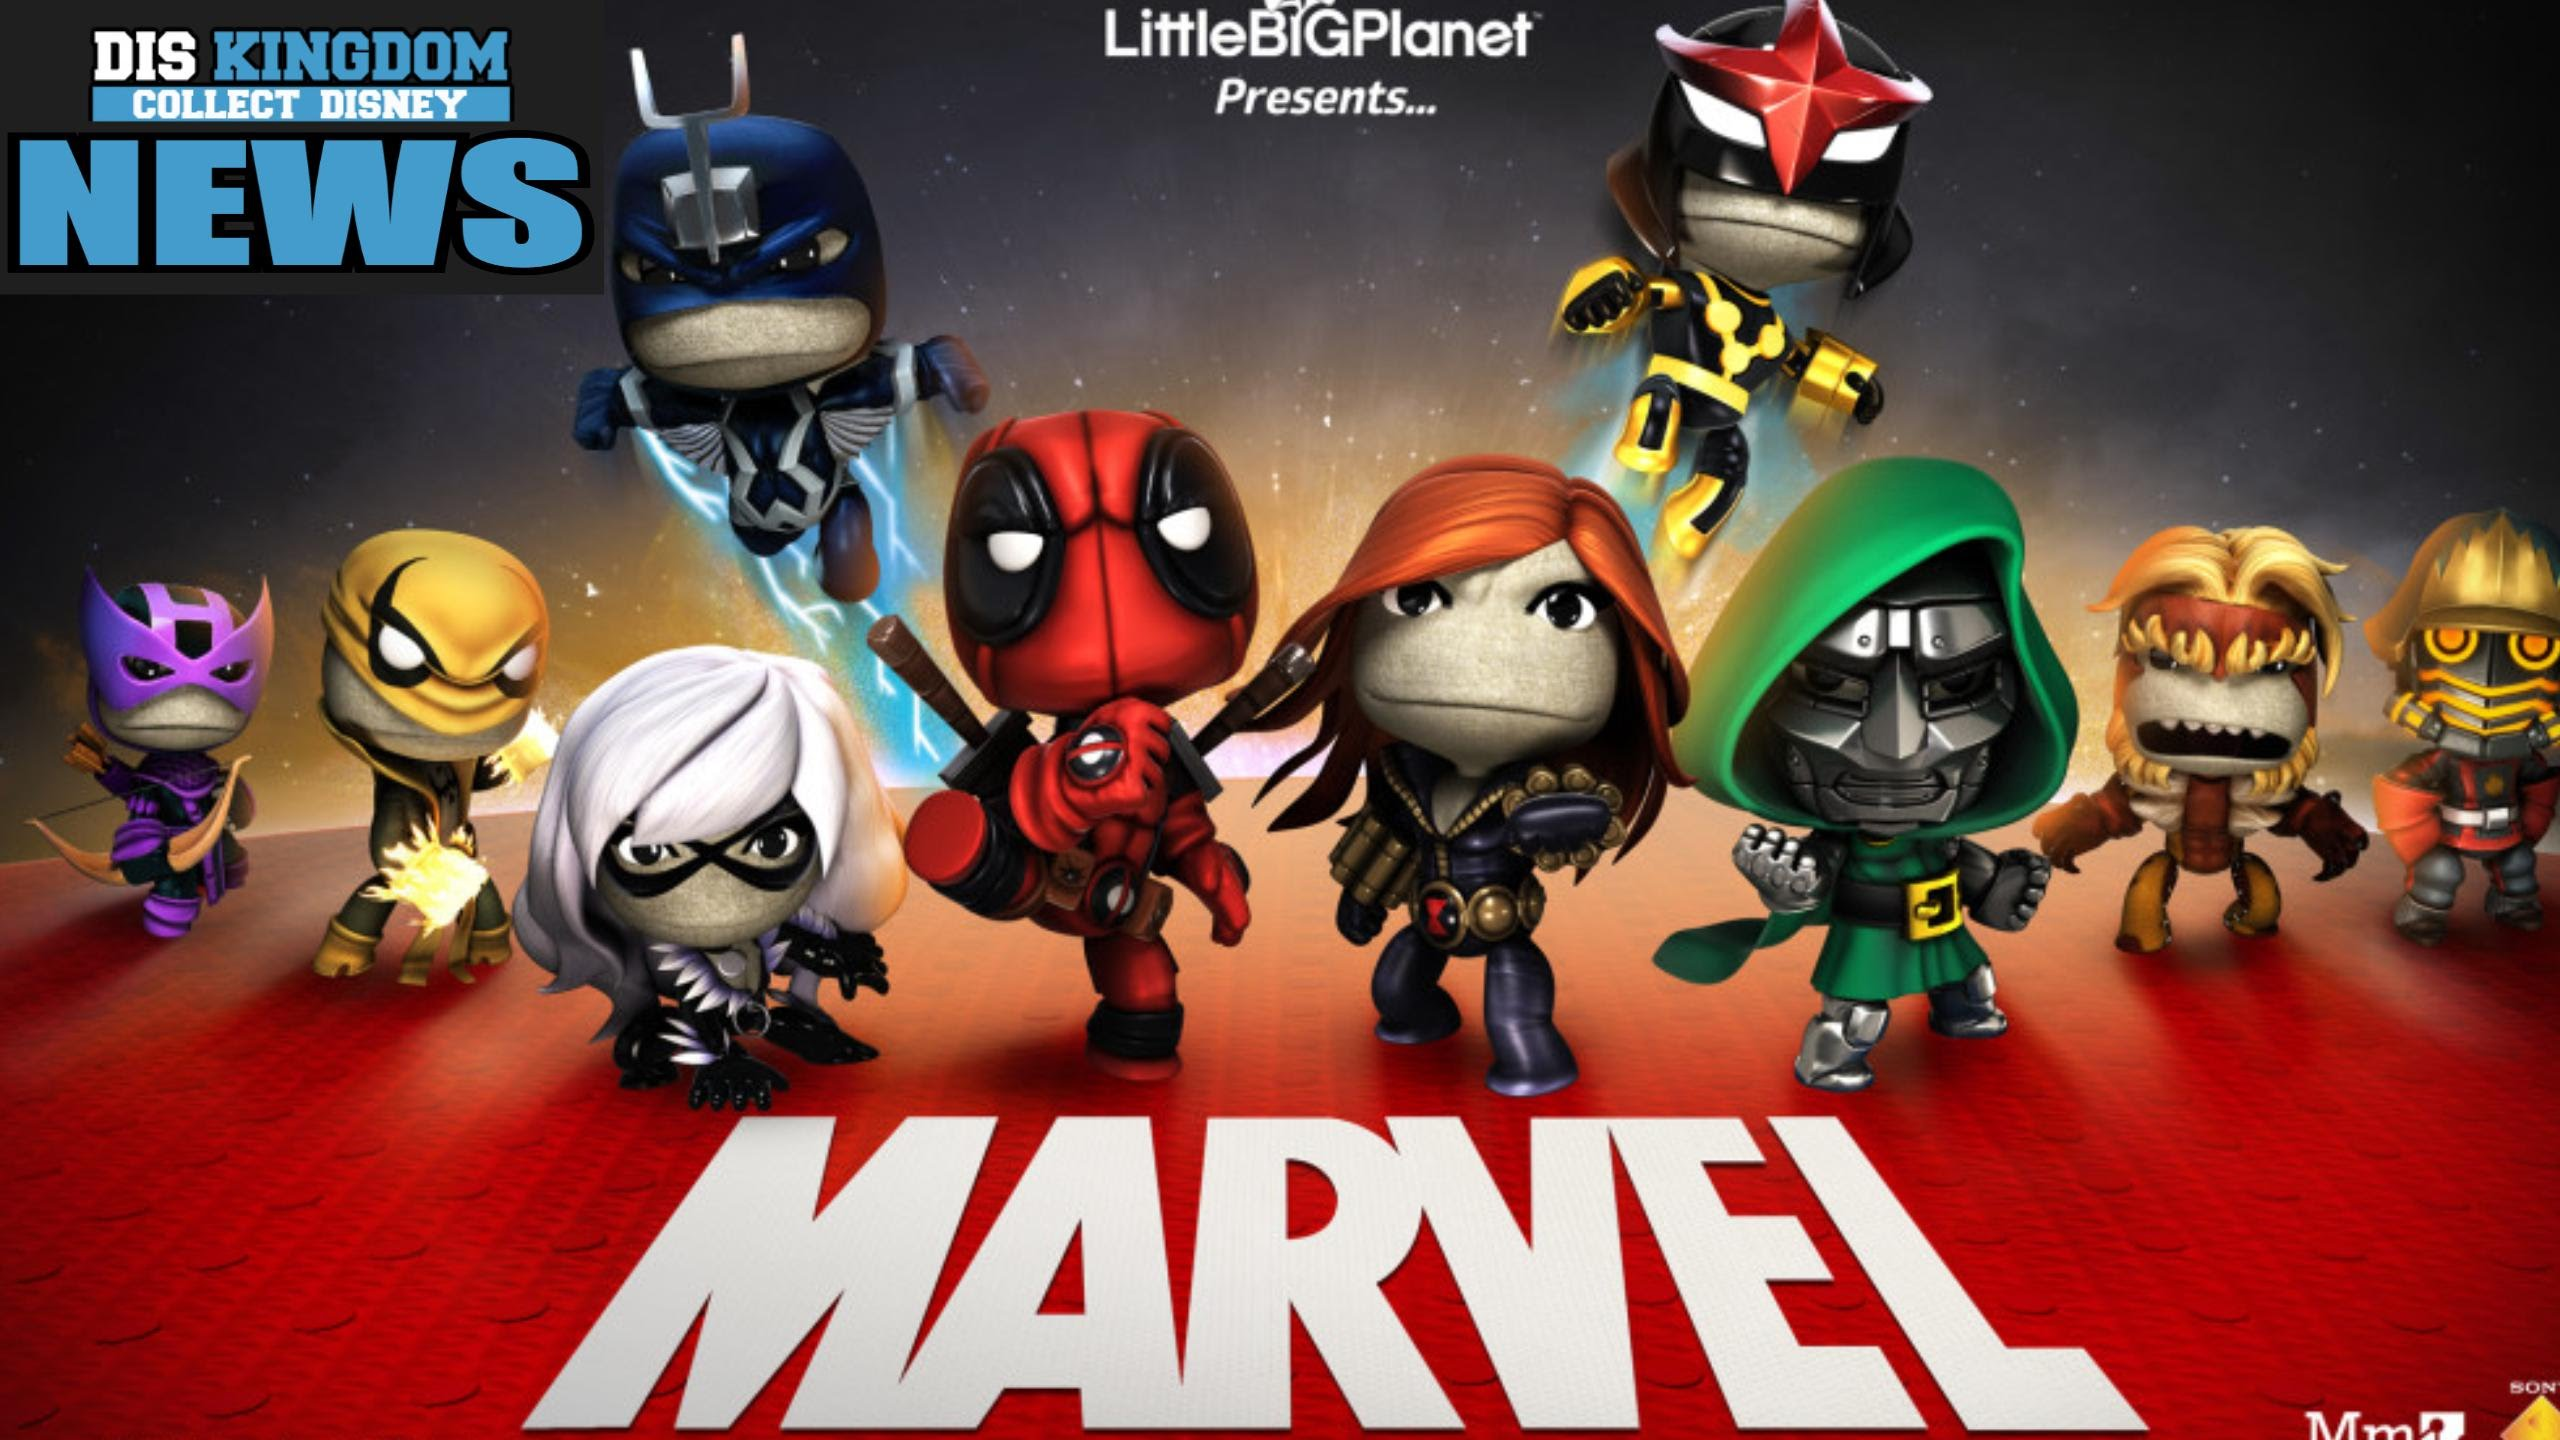 Marvel LittleBigPlanet Content Being Removed This Week